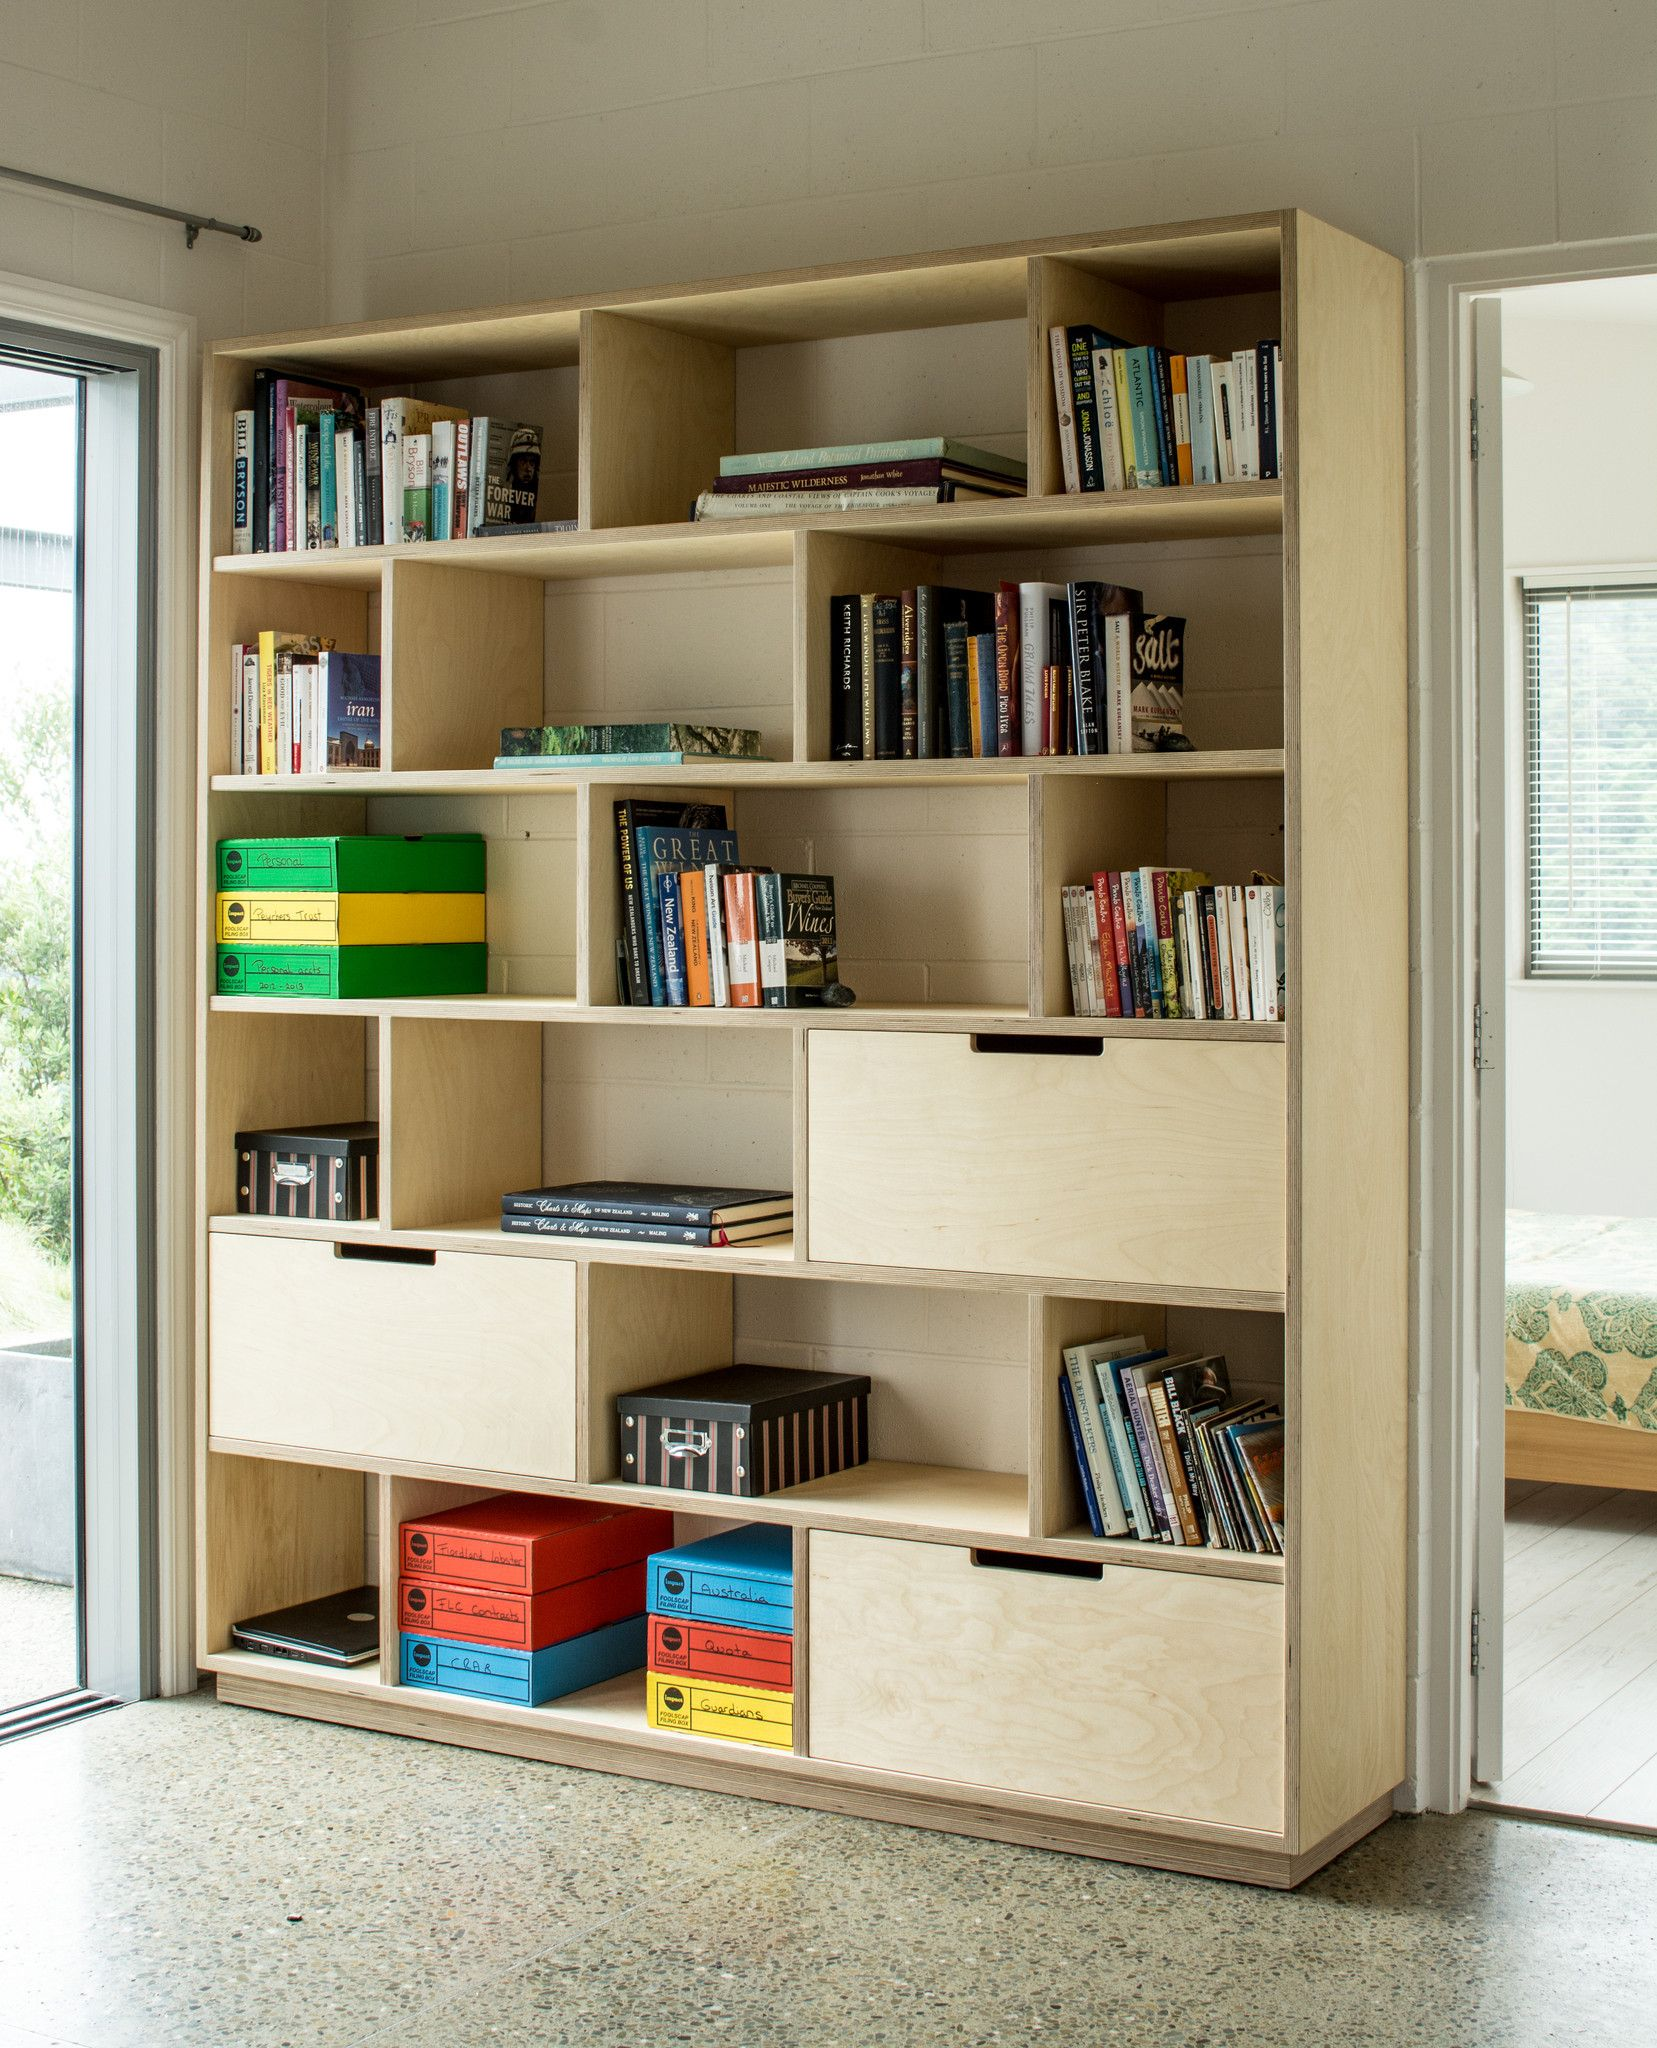 Plywood Bookshelf And Office Storage With Images Office